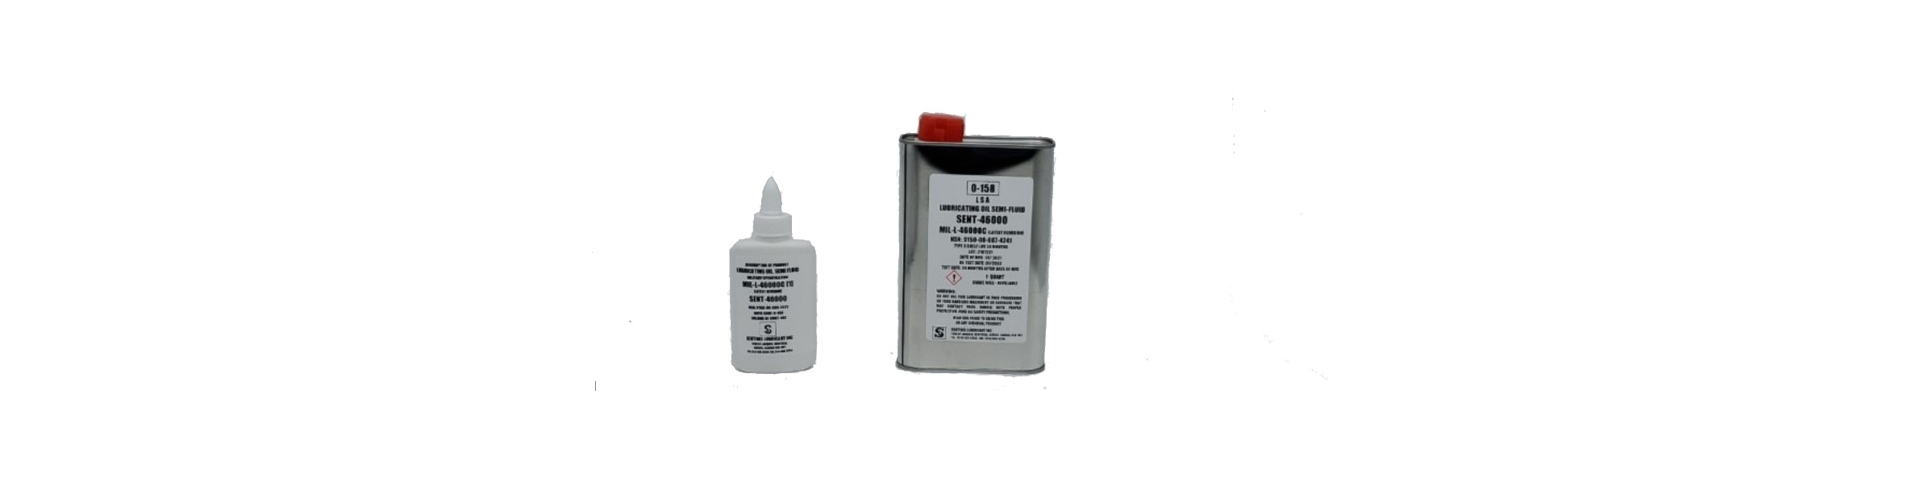 https://www.triple-r-products.com/catalog/firearm-accessories/gun-cleaning-lubricating-oils-and-protectants